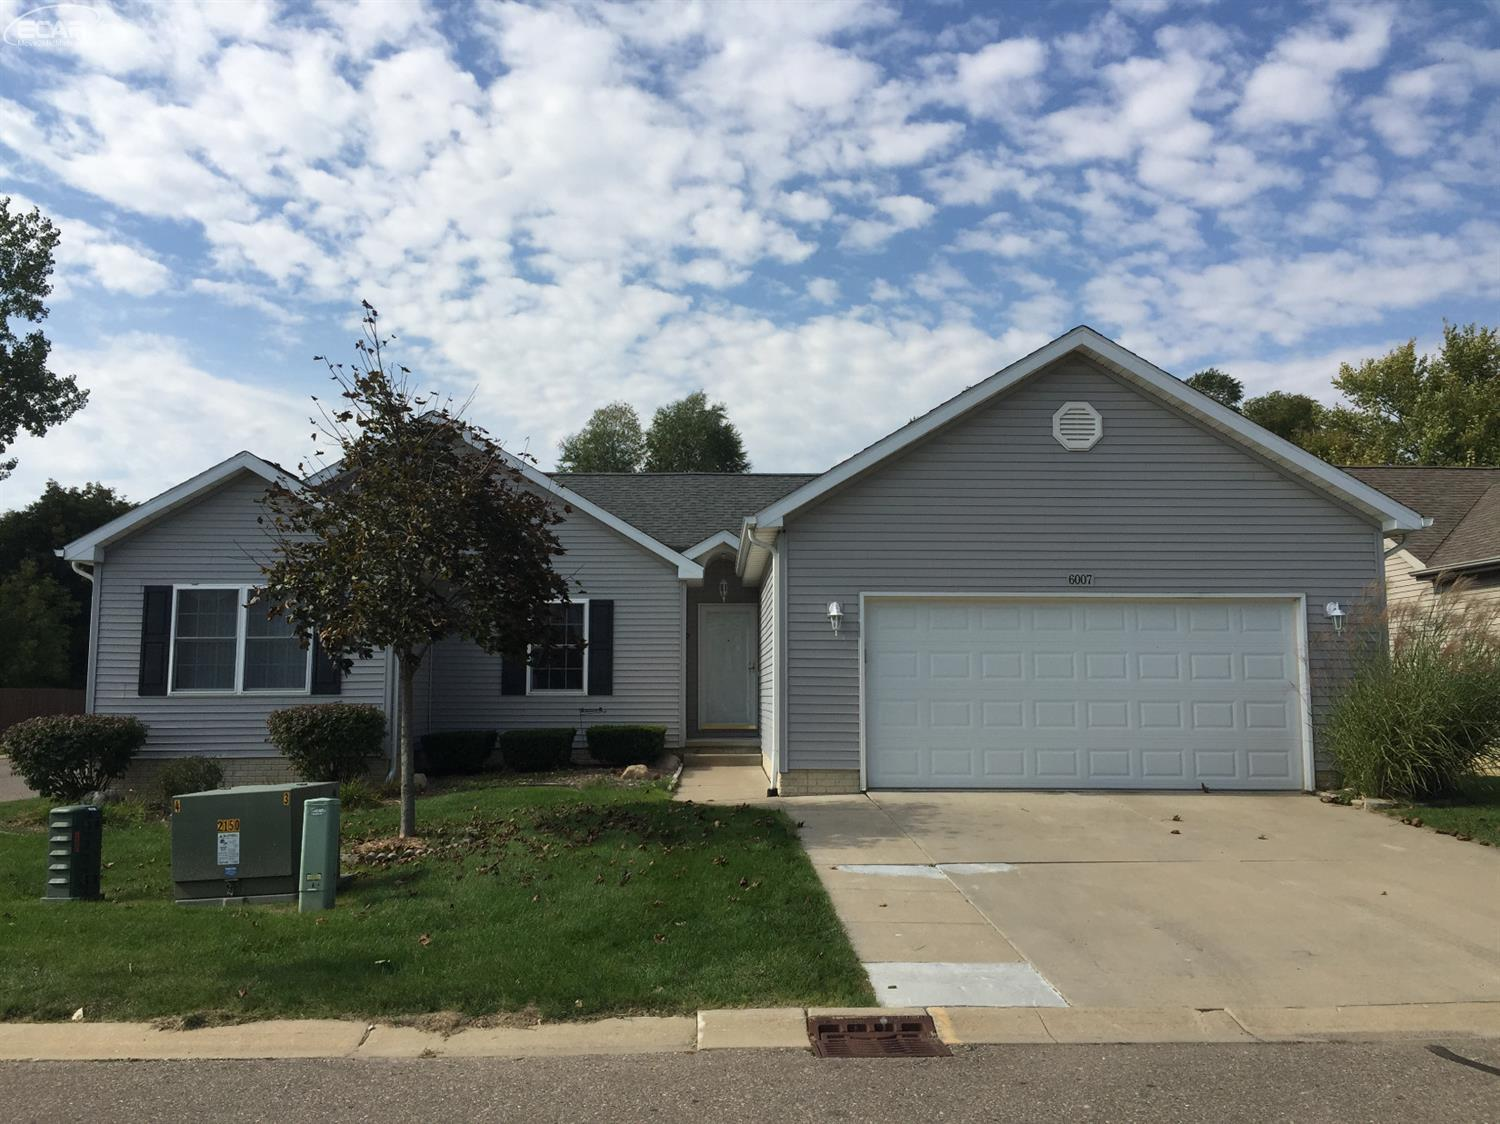 6007 Creekside Dr, Swartz Creek, MI 48473